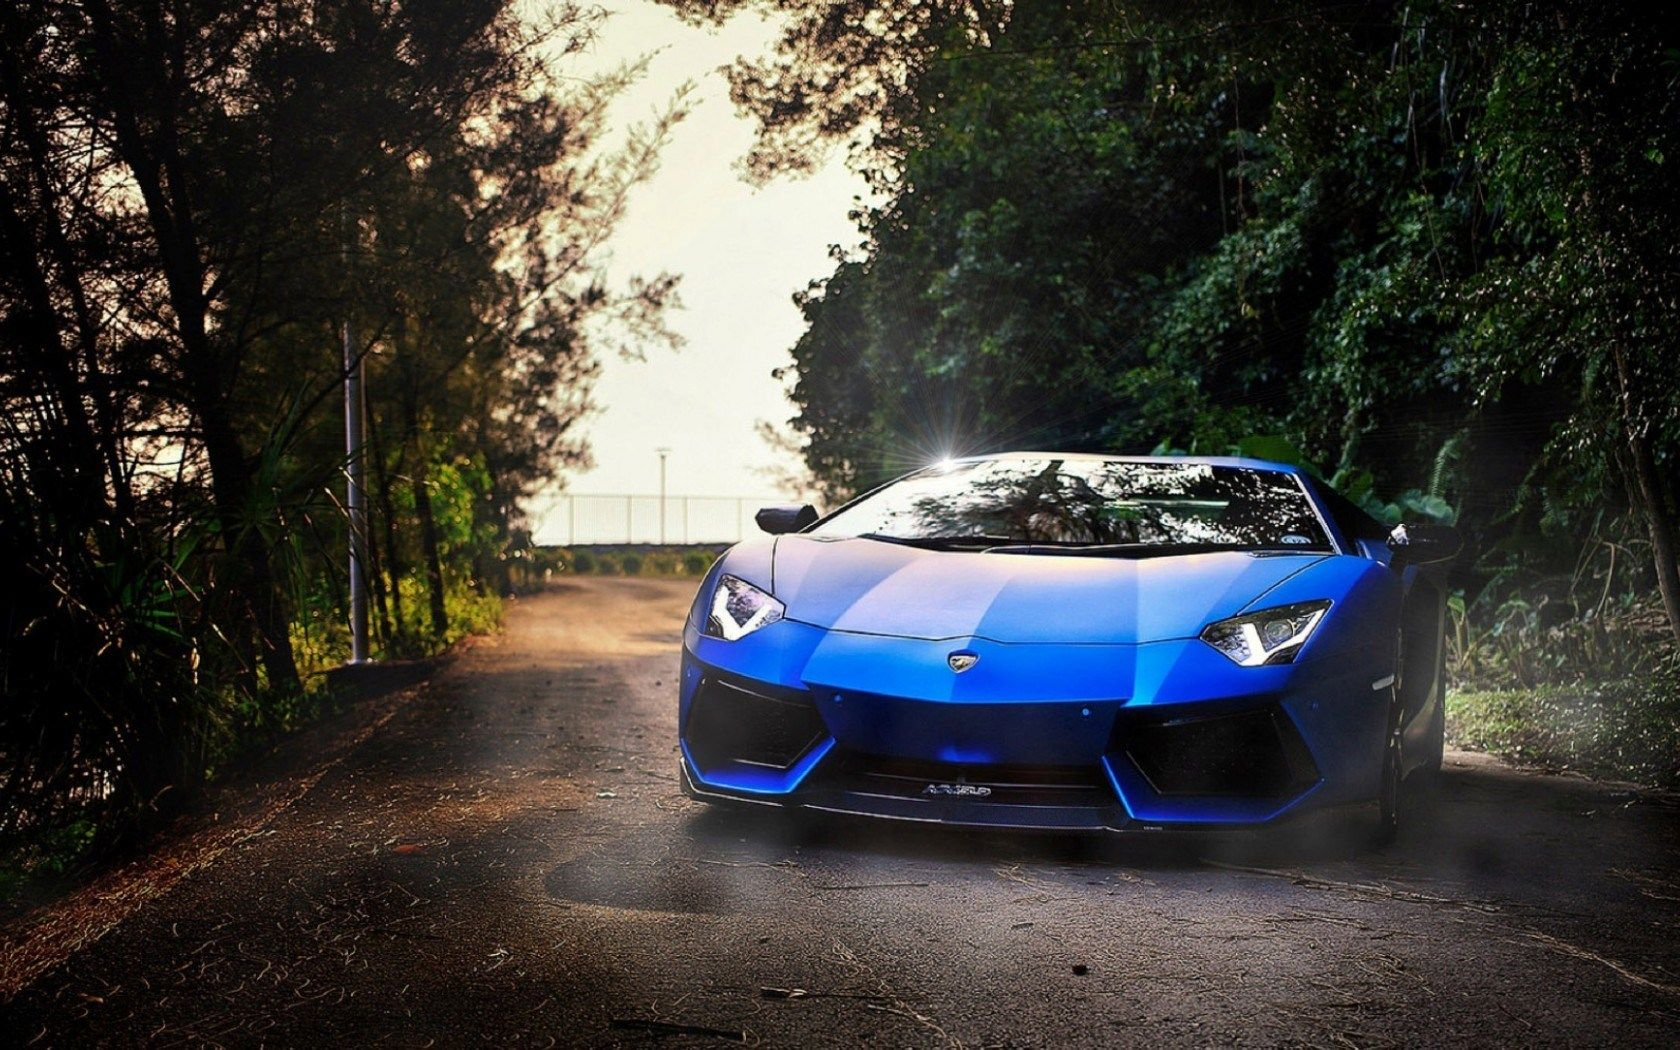 While we receive compensation when you click links to. Lamborghini Car Hd Wallpapers Top Free Lamborghini Car Hd Backgrounds Wallpaperaccess